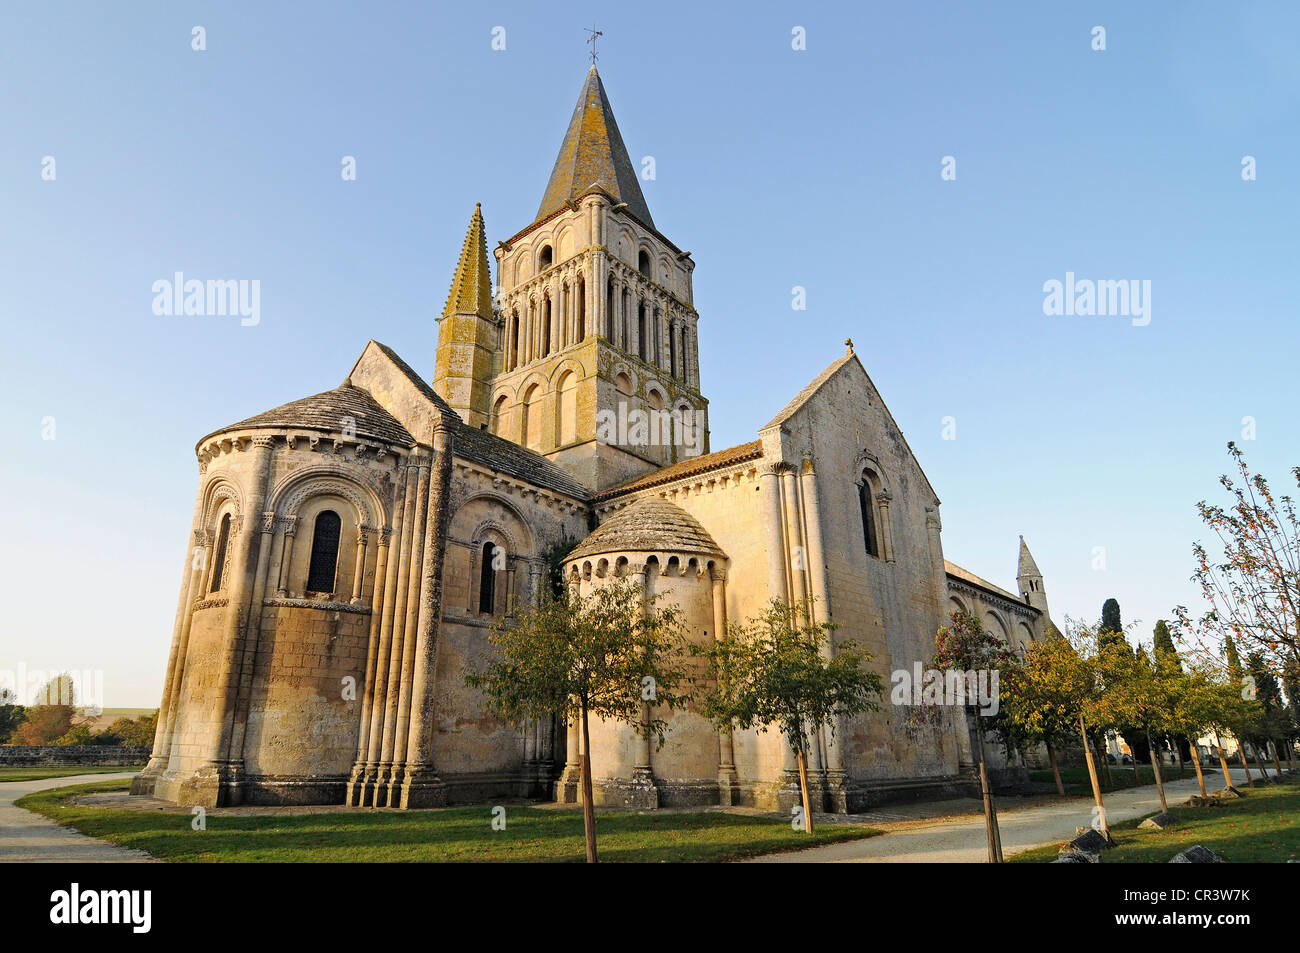 Eglise Saint Pierre church, French Way, Way of St James, Aulnay, Charente-Maritime, Poitou-Charentes, France, Europe - Stock Image